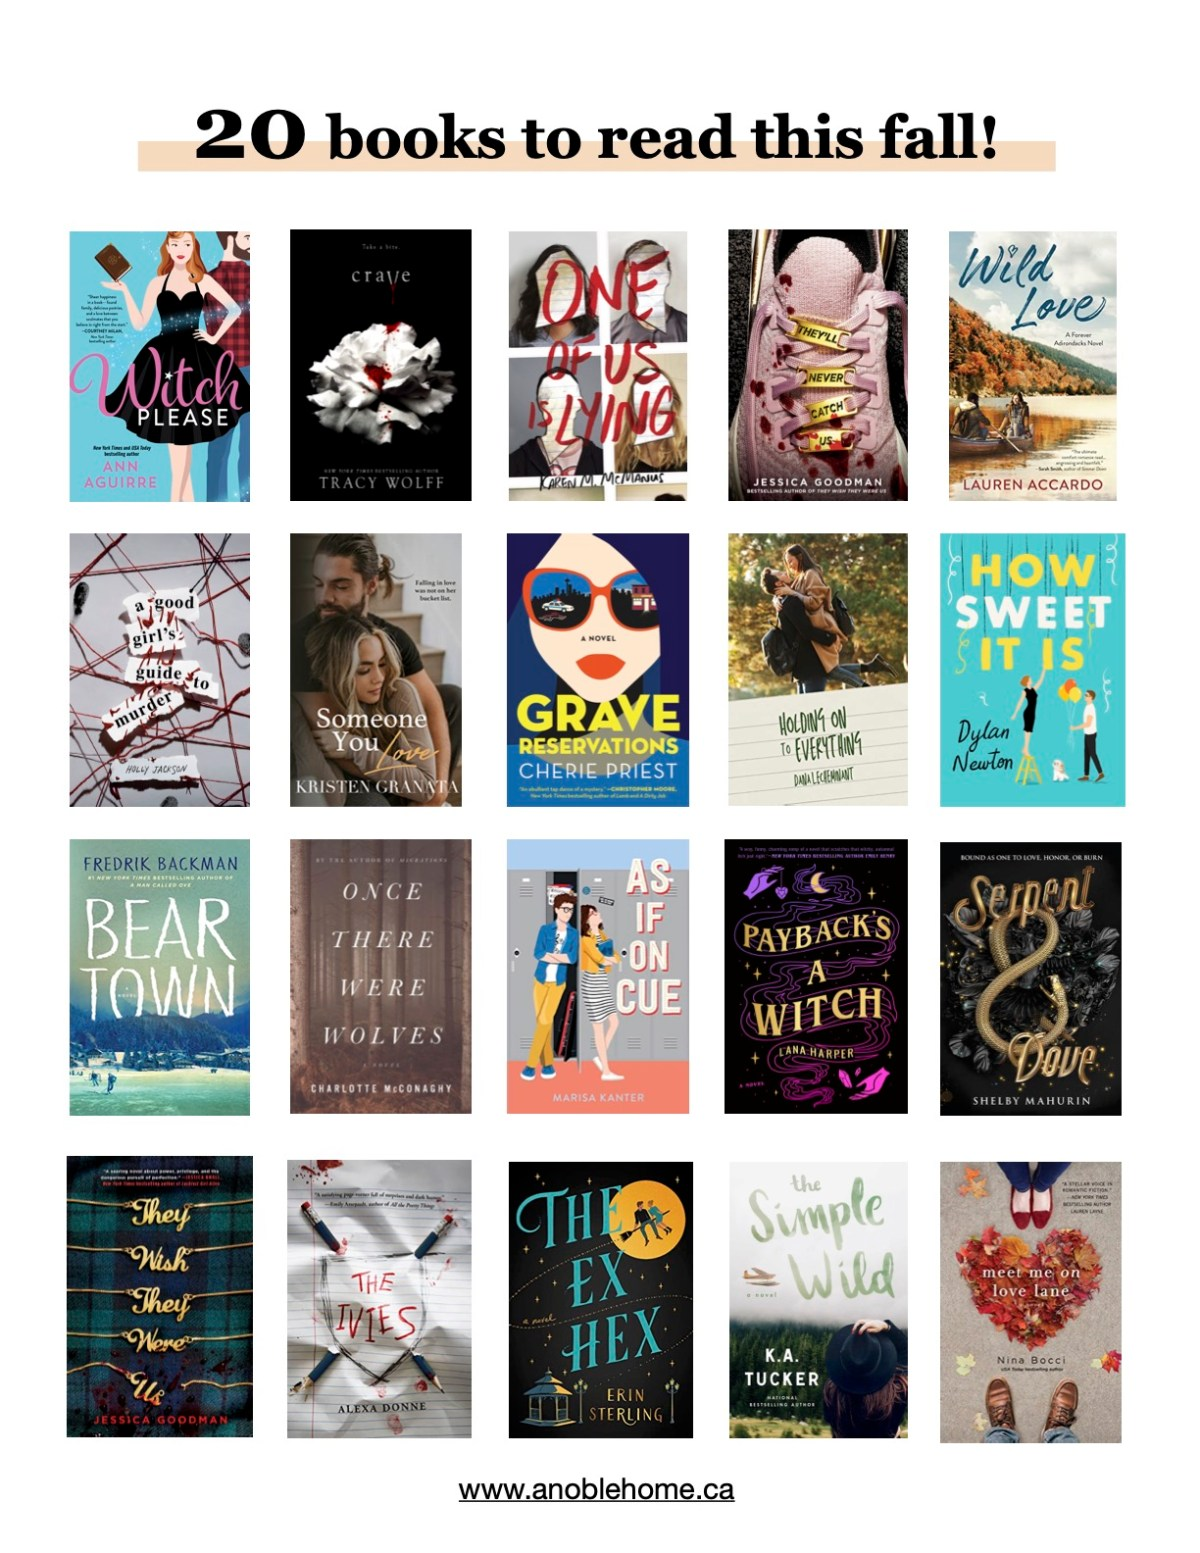 20 books to read this fall!